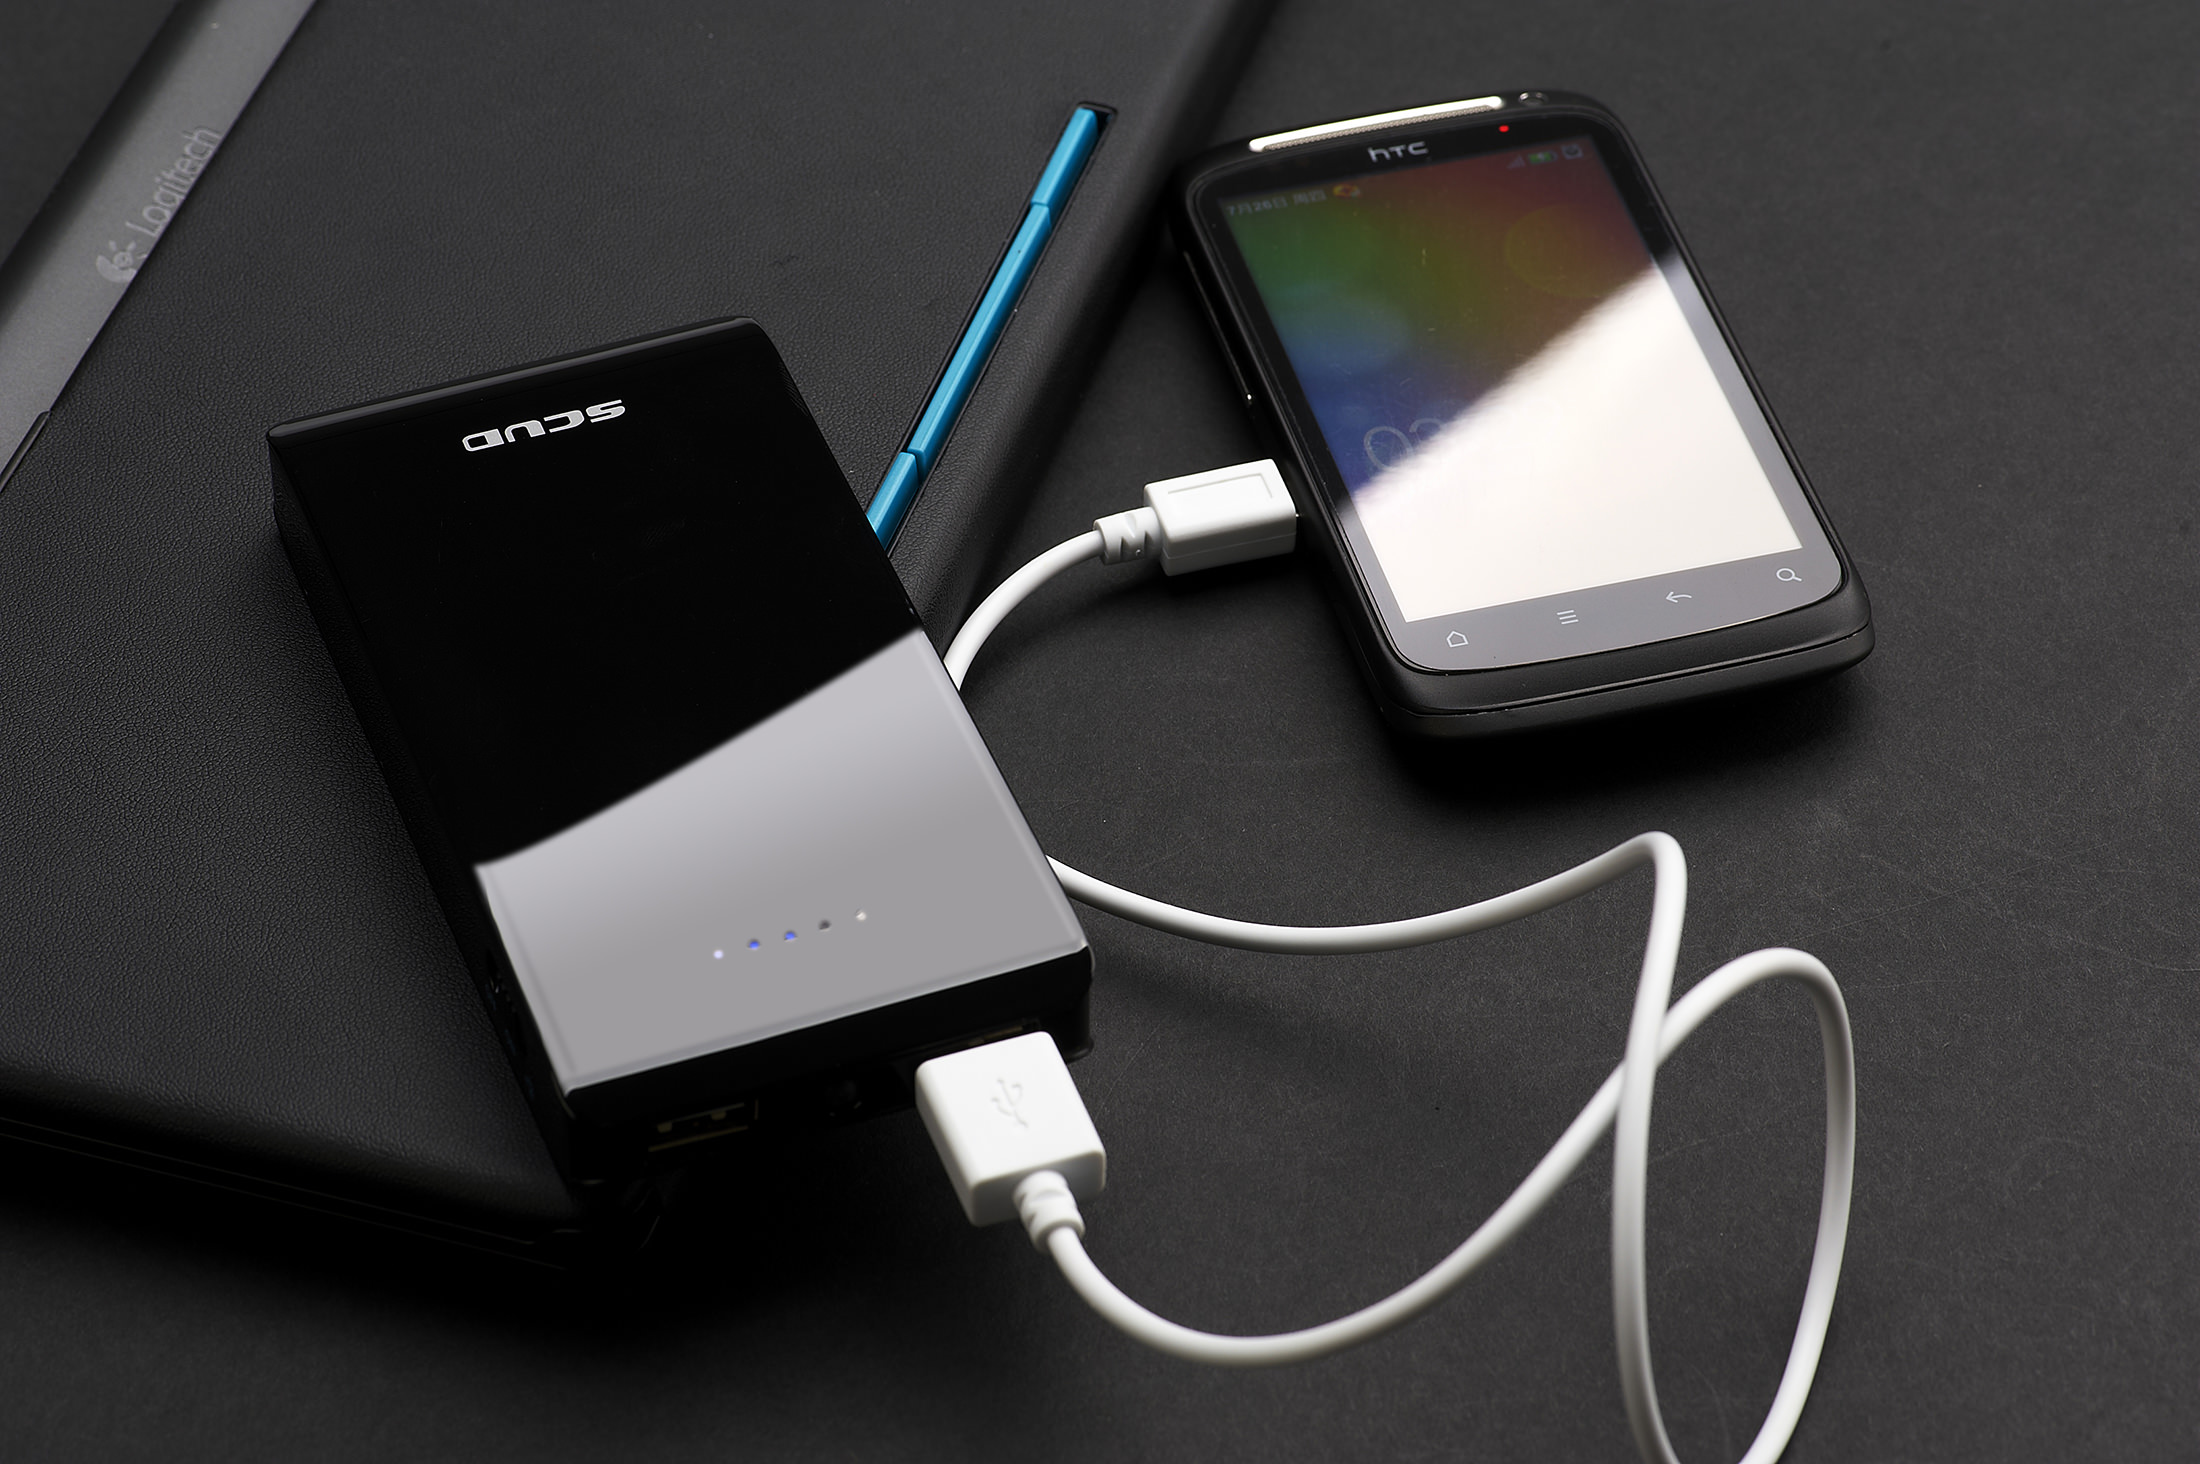 sony usb charger power bank mobile